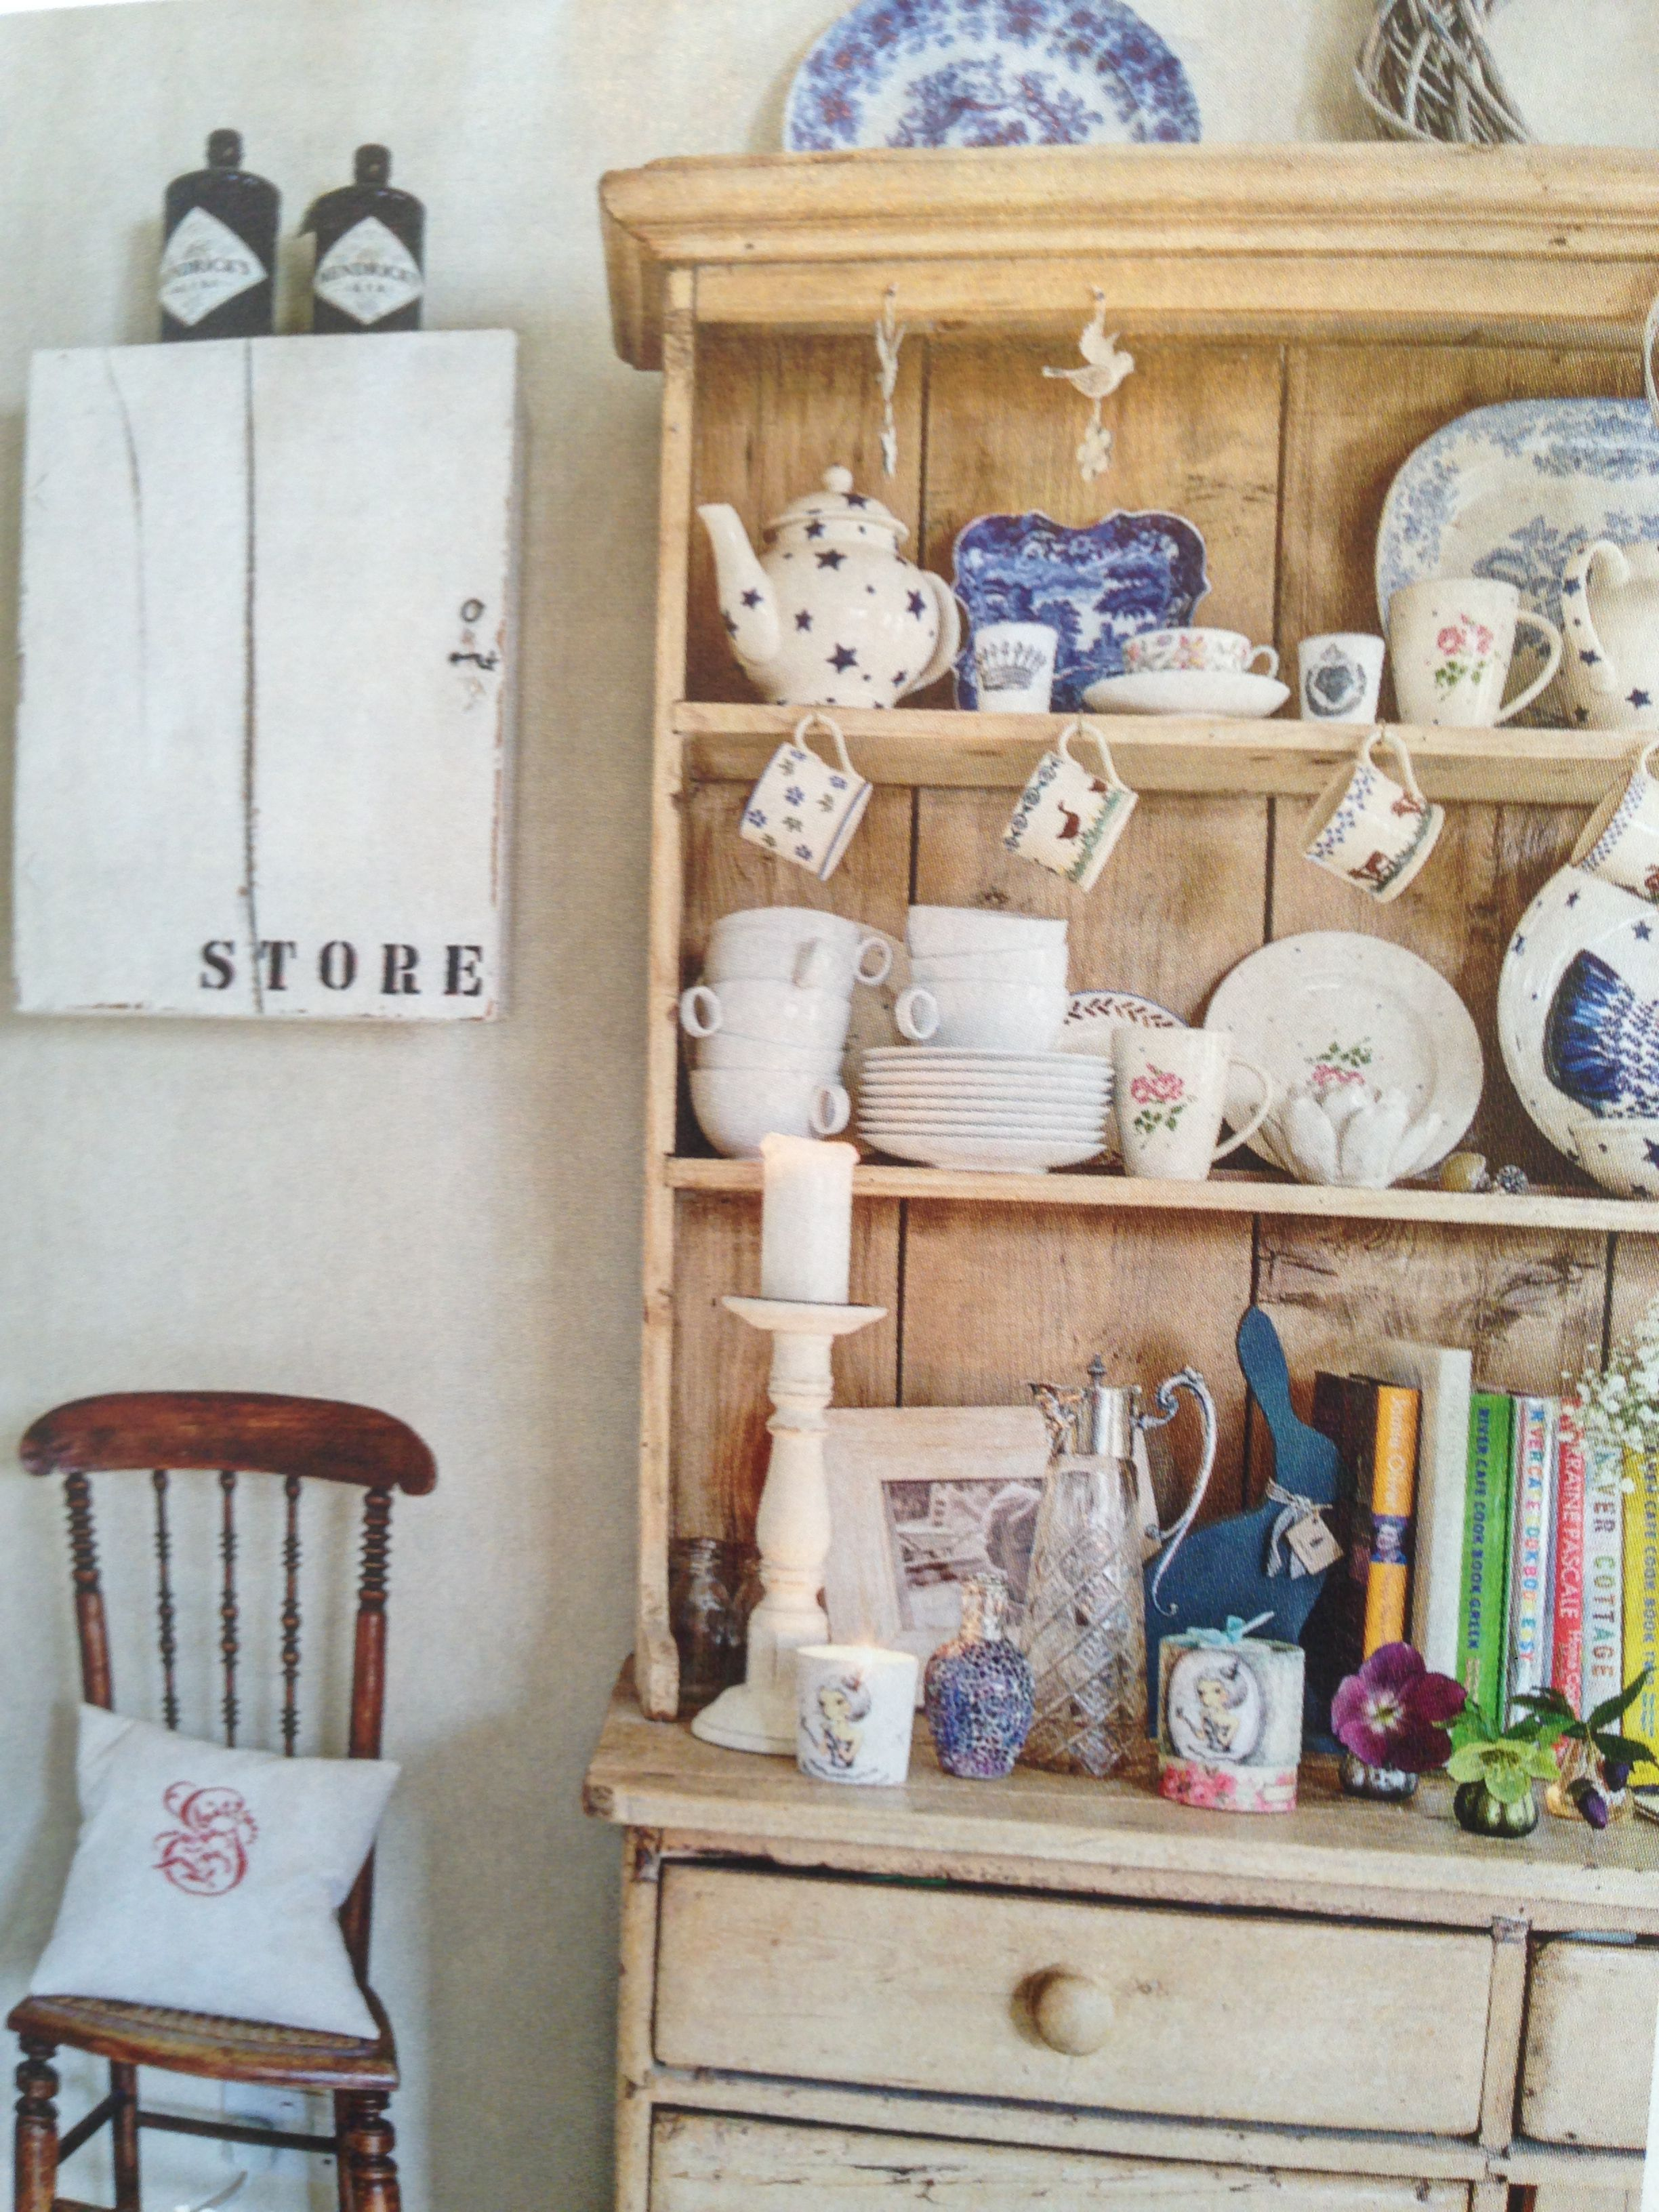 Kitchen Hutch Display With Hanging Teacups, Cookbooks, And Dishes I